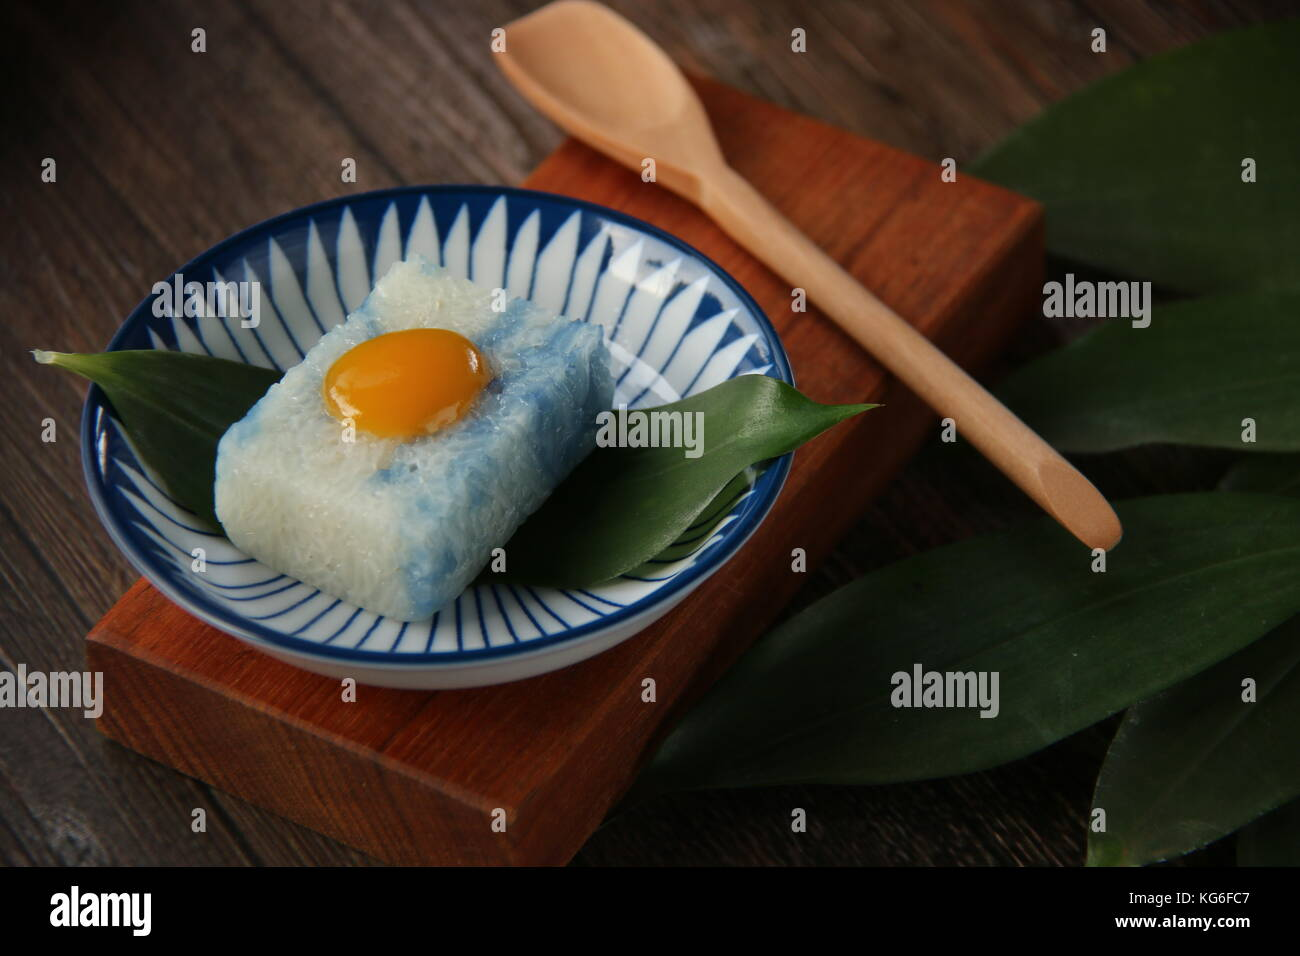 Pulut Tai Tai or Pulut Tekan, the Peranakan Blue and White Glutinous Rice Cake  with Kaya Jam - Stock Image